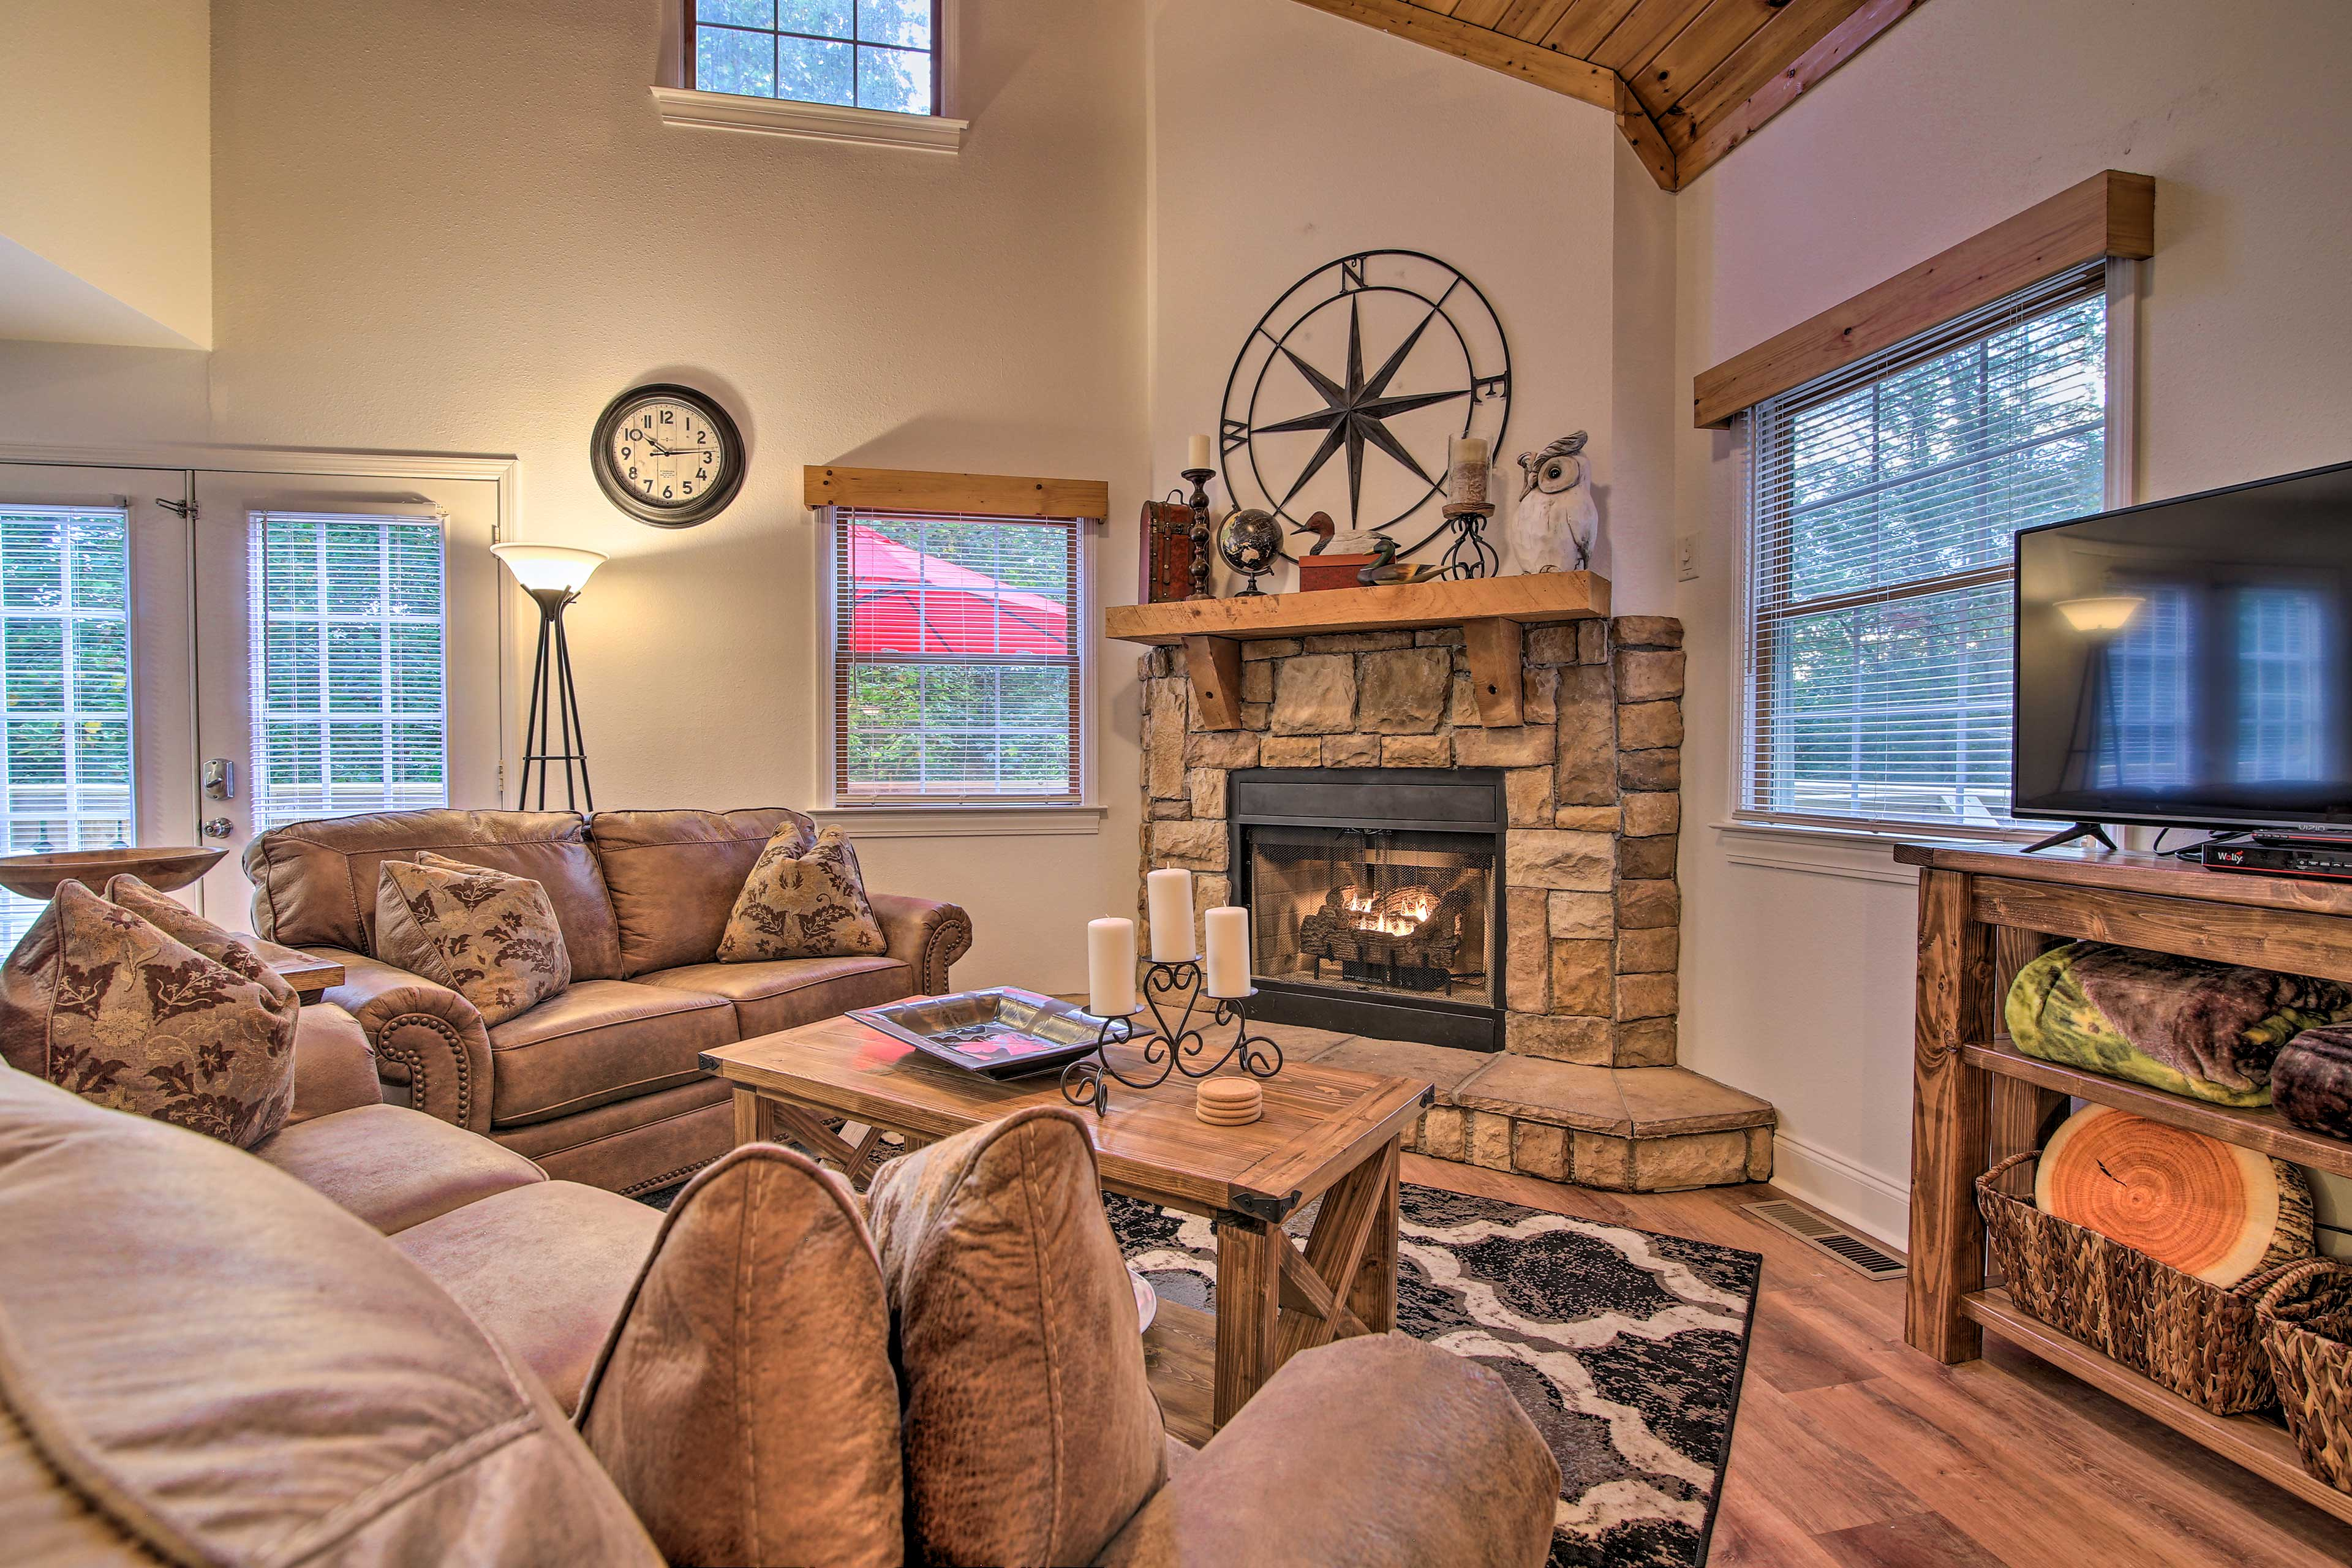 Watch a show on the flat-screen TV and cozy up by the fireplace.